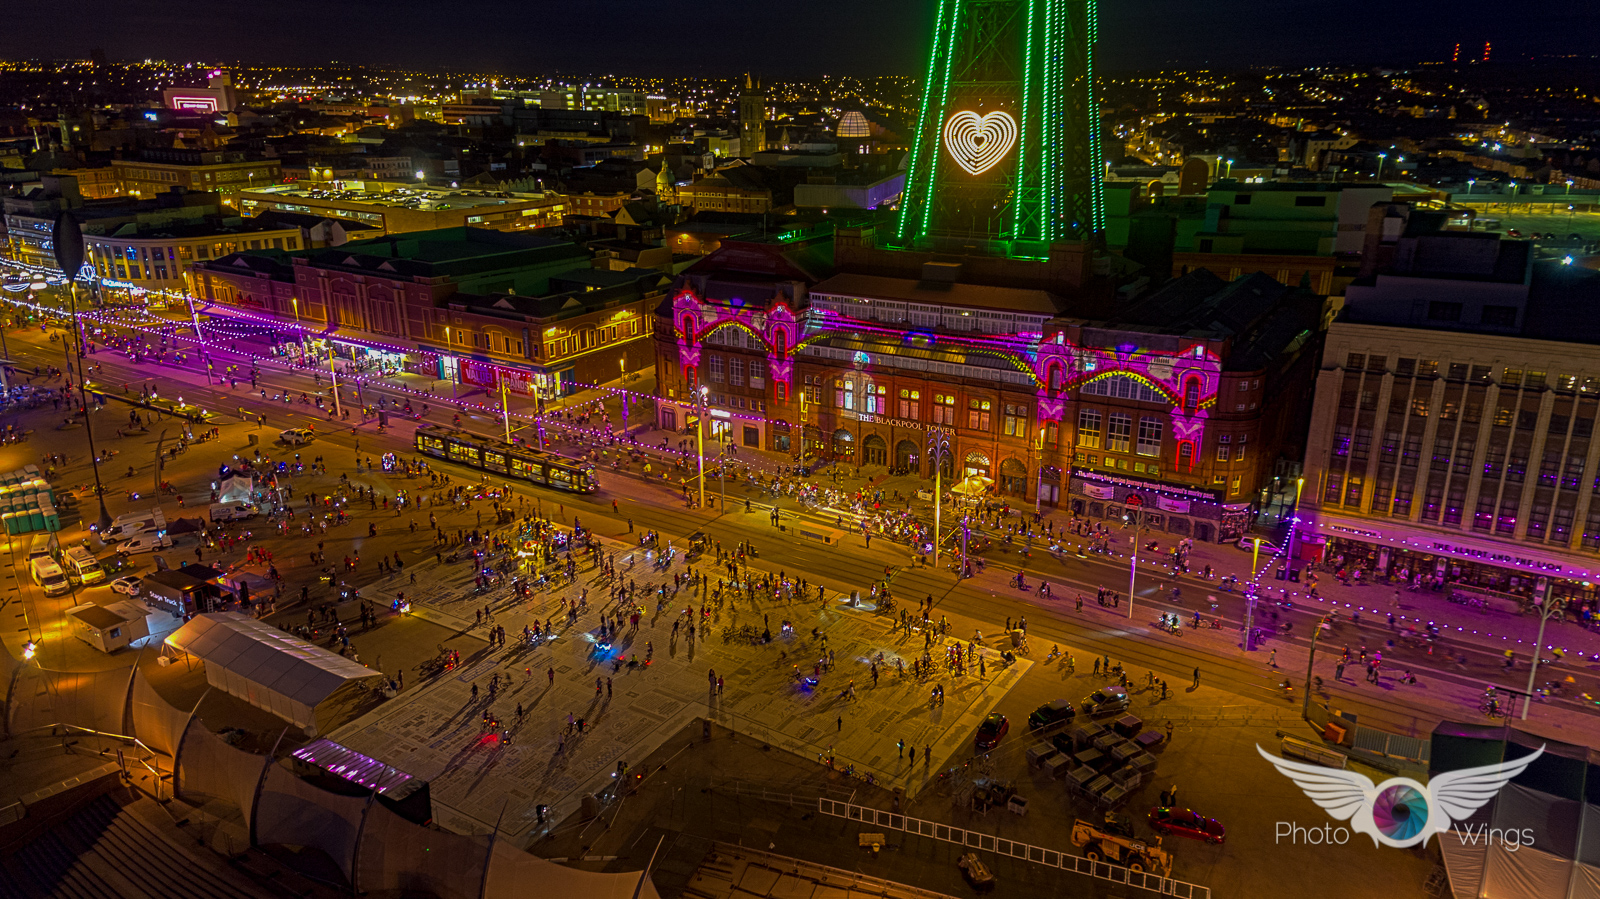 Aerial view of Ride the Lights 2016, credit Photo Wings